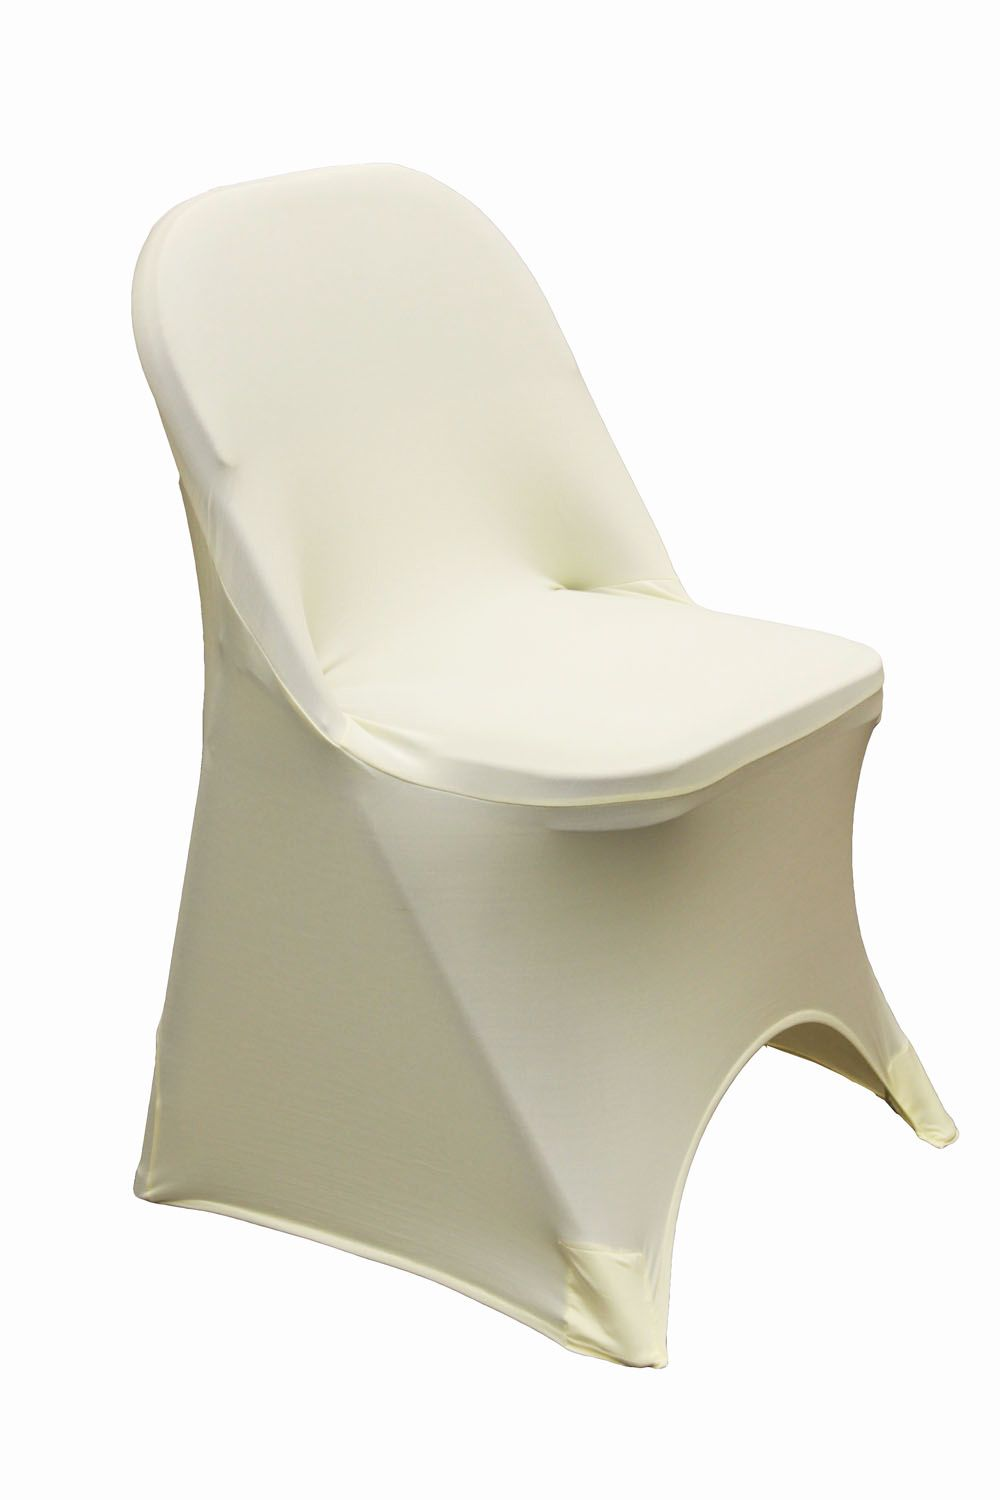 Folding Spandex Chair Cover Ivory | Metal folding chairs